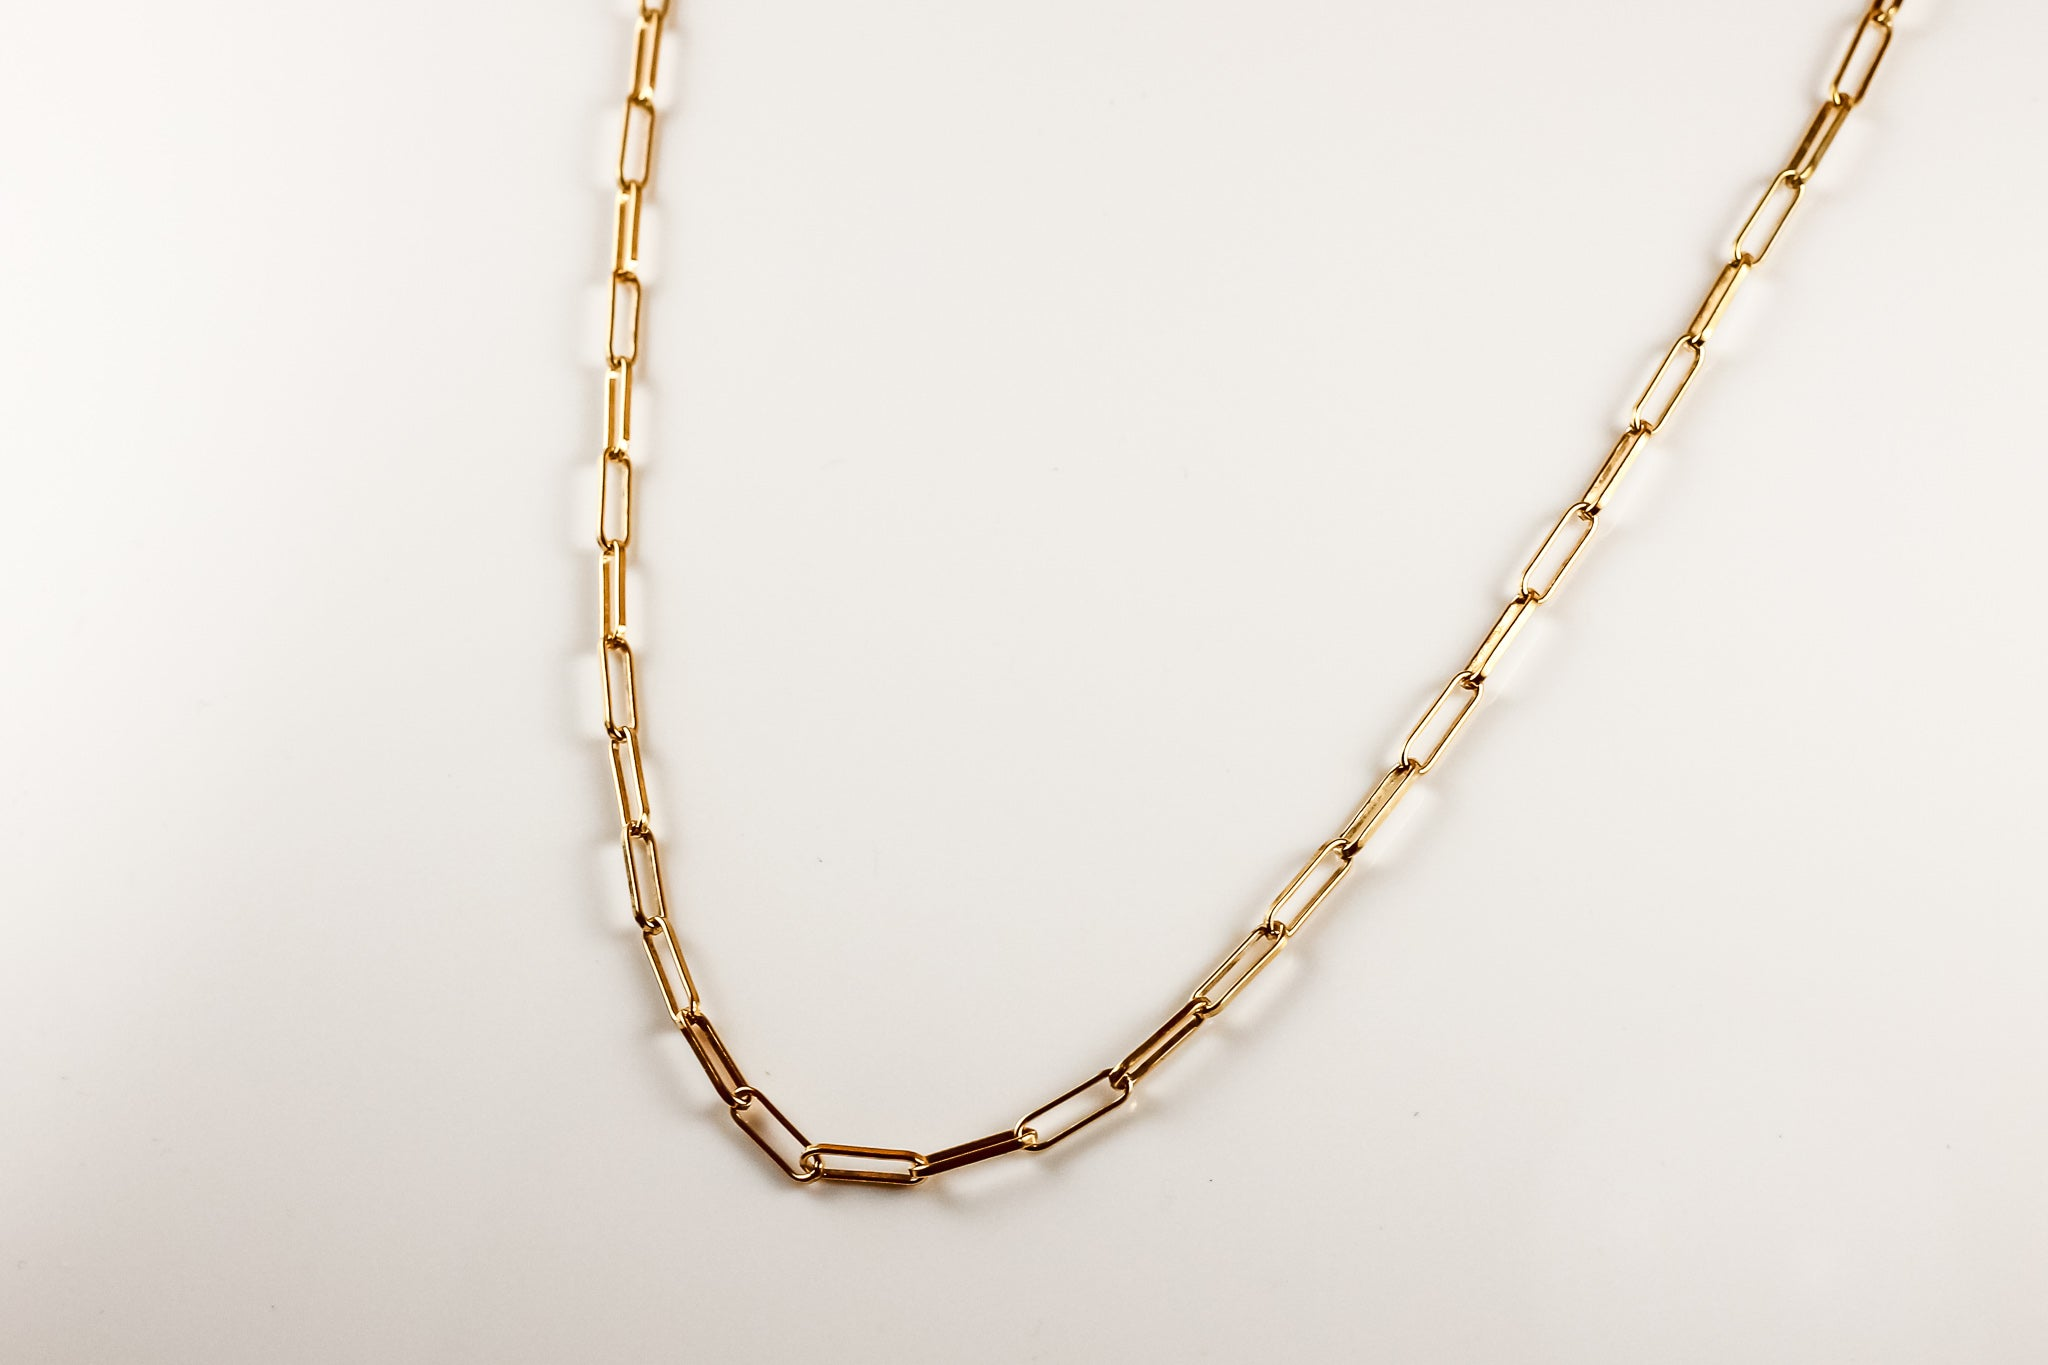 Box Paperclip Chain Necklace